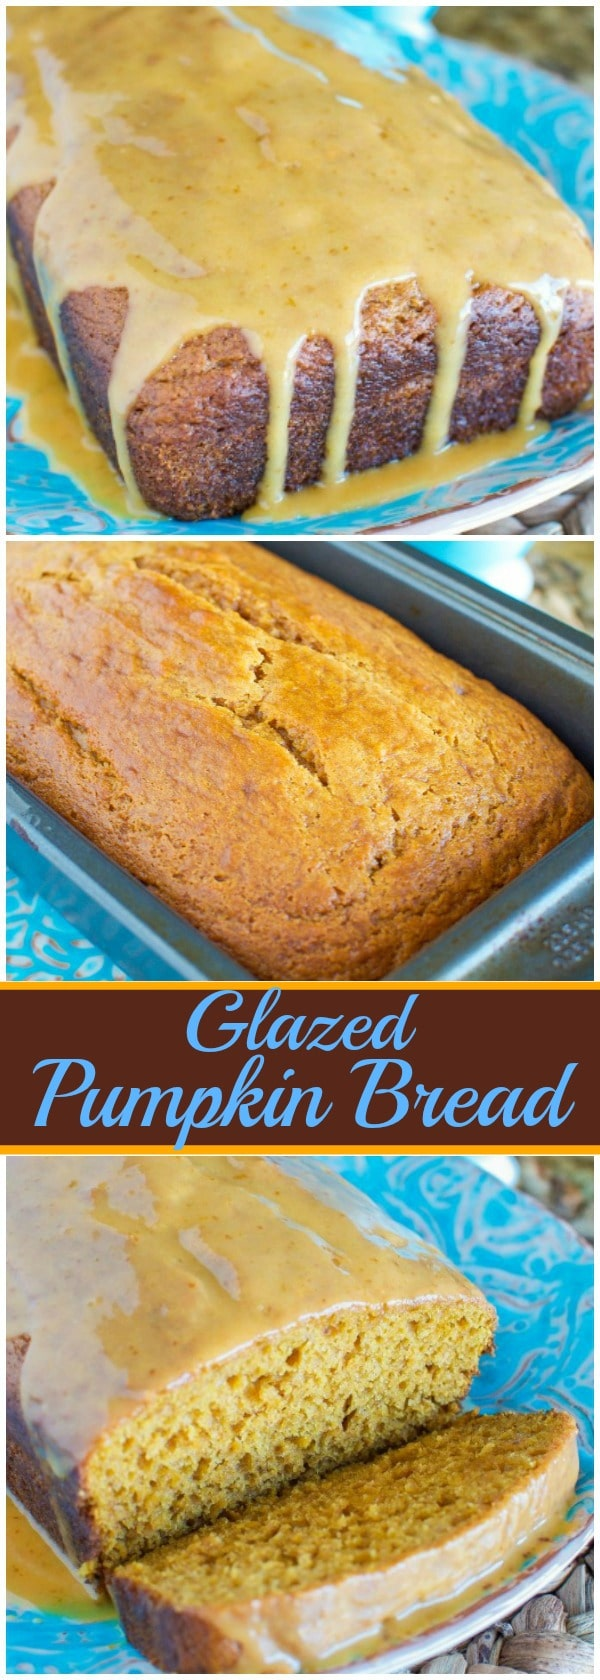 Glazed Pumpkin Bread - A MUST MAKE for fall!!